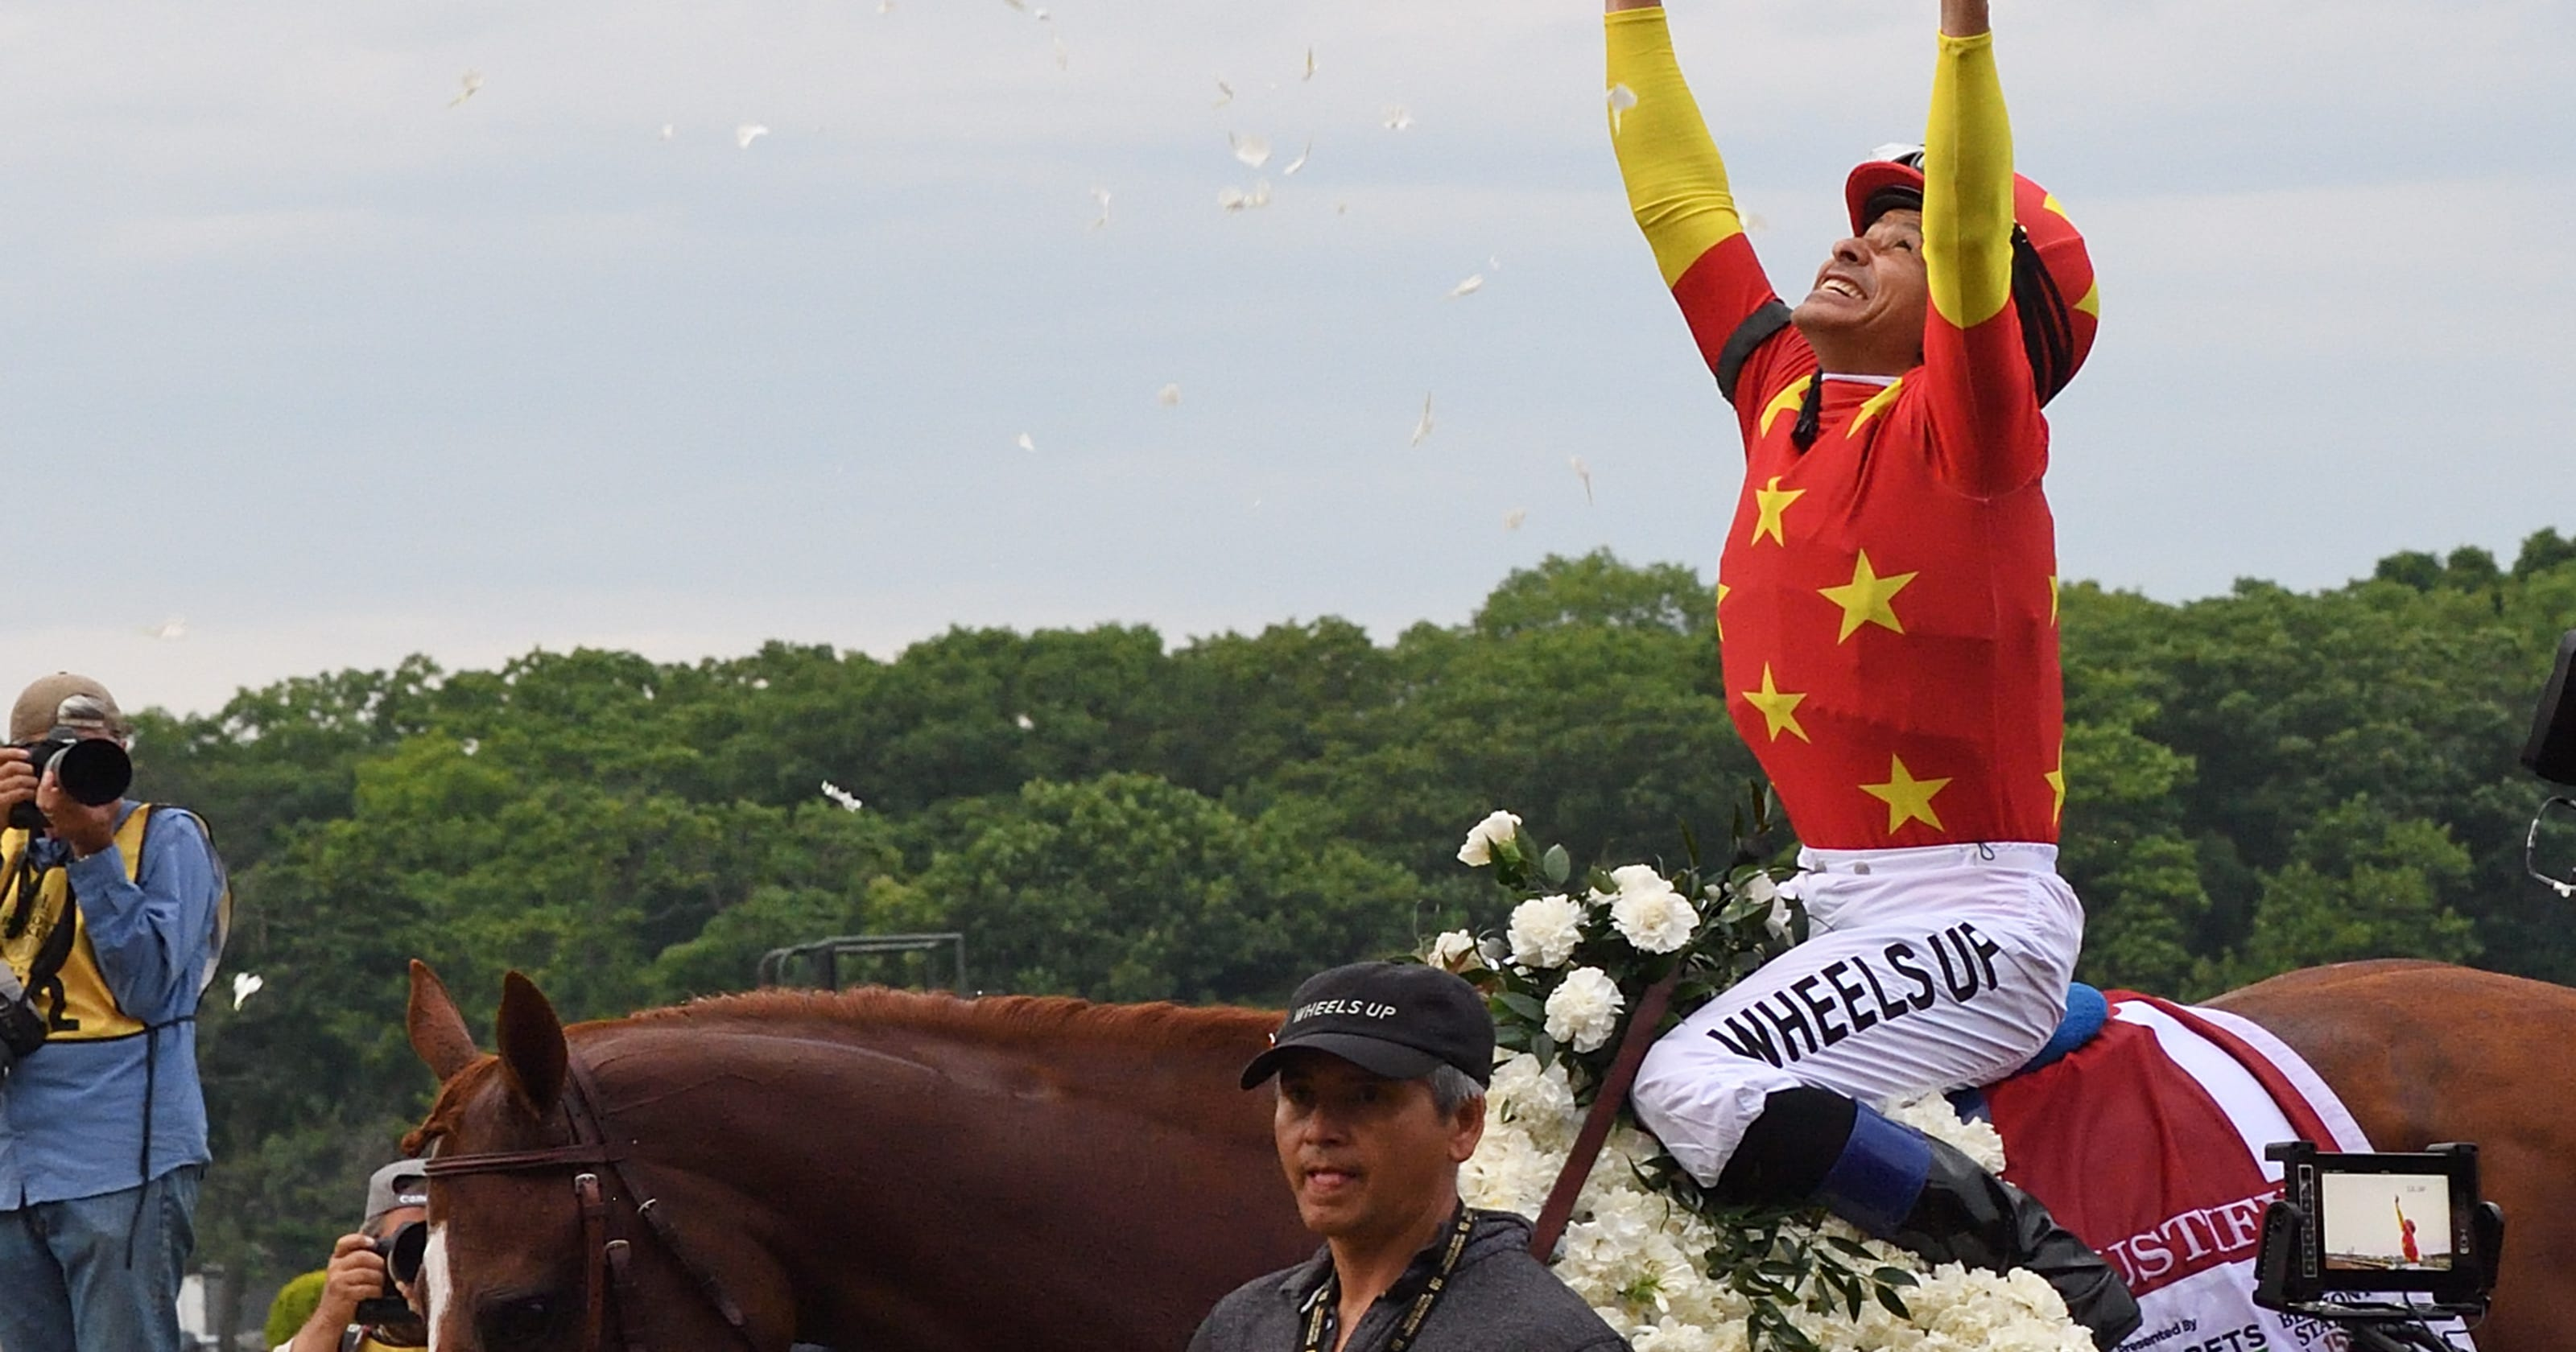 Justify jockey Mike Smith\'s ride to Triple Crown began in New Mexico